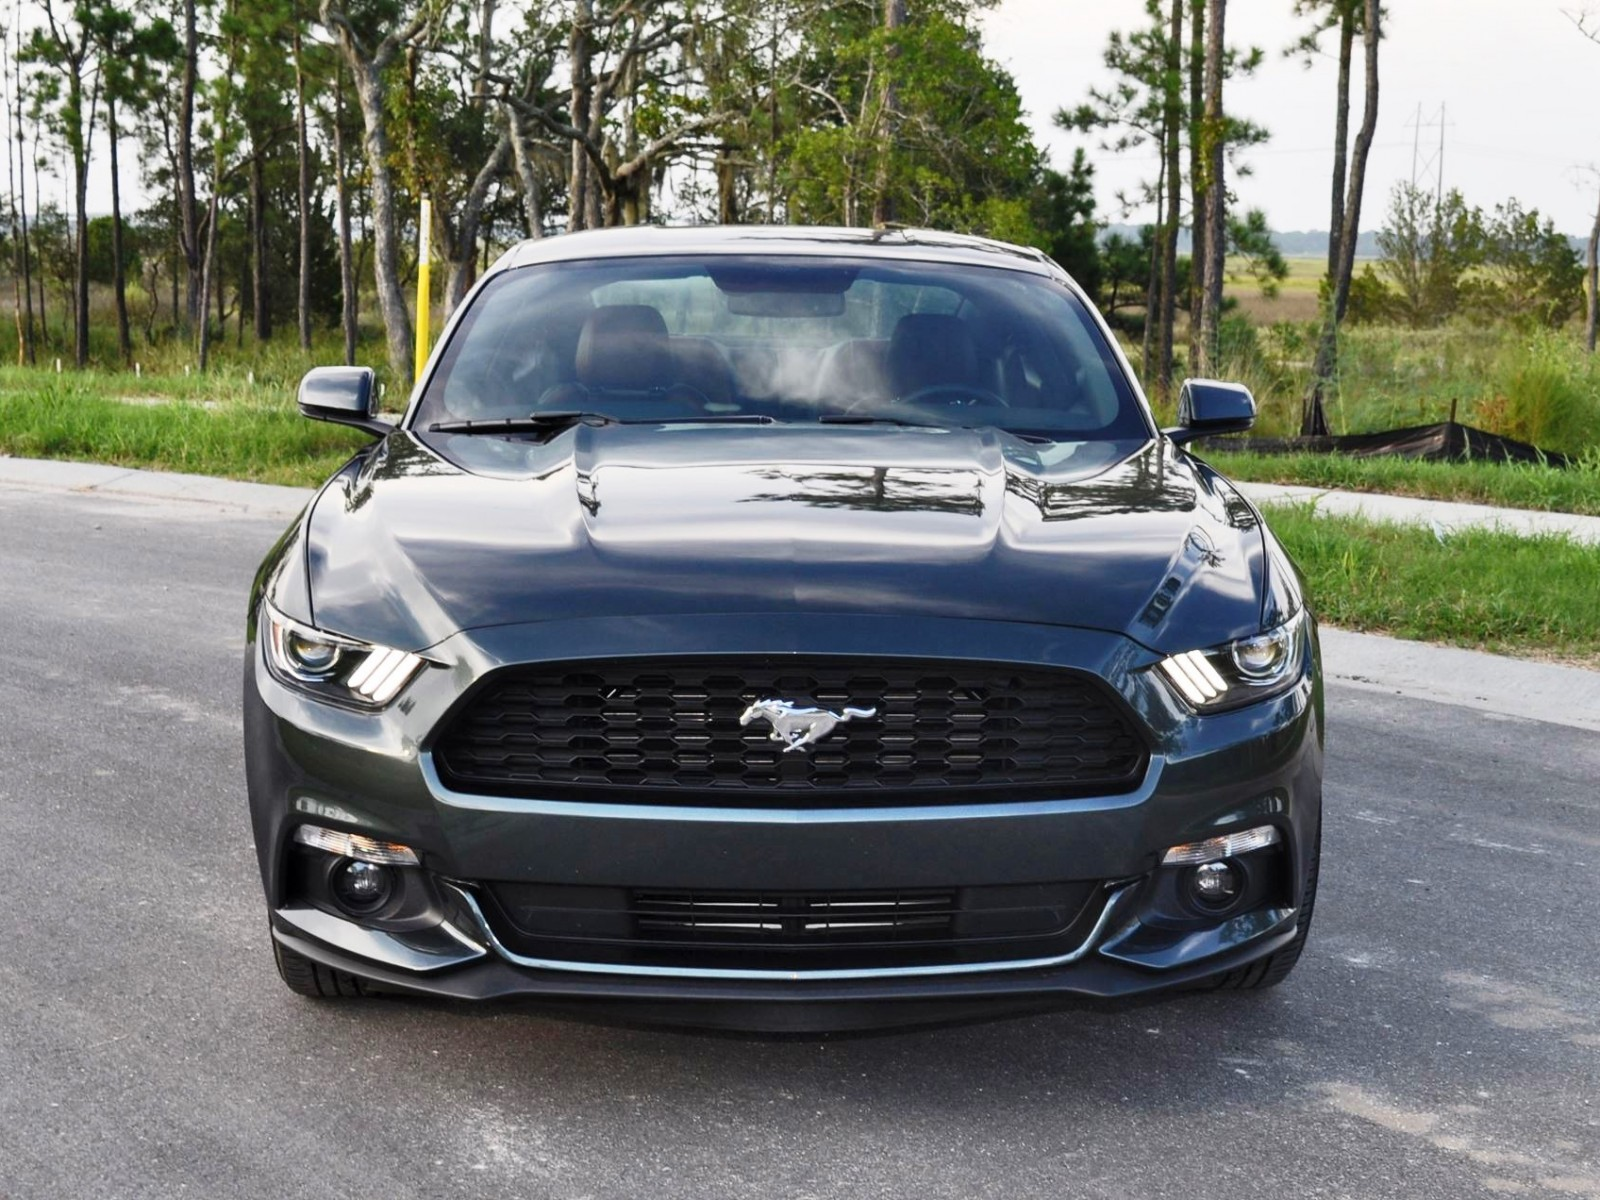 2015 ford mustang ecoboost automatic review 15. Black Bedroom Furniture Sets. Home Design Ideas